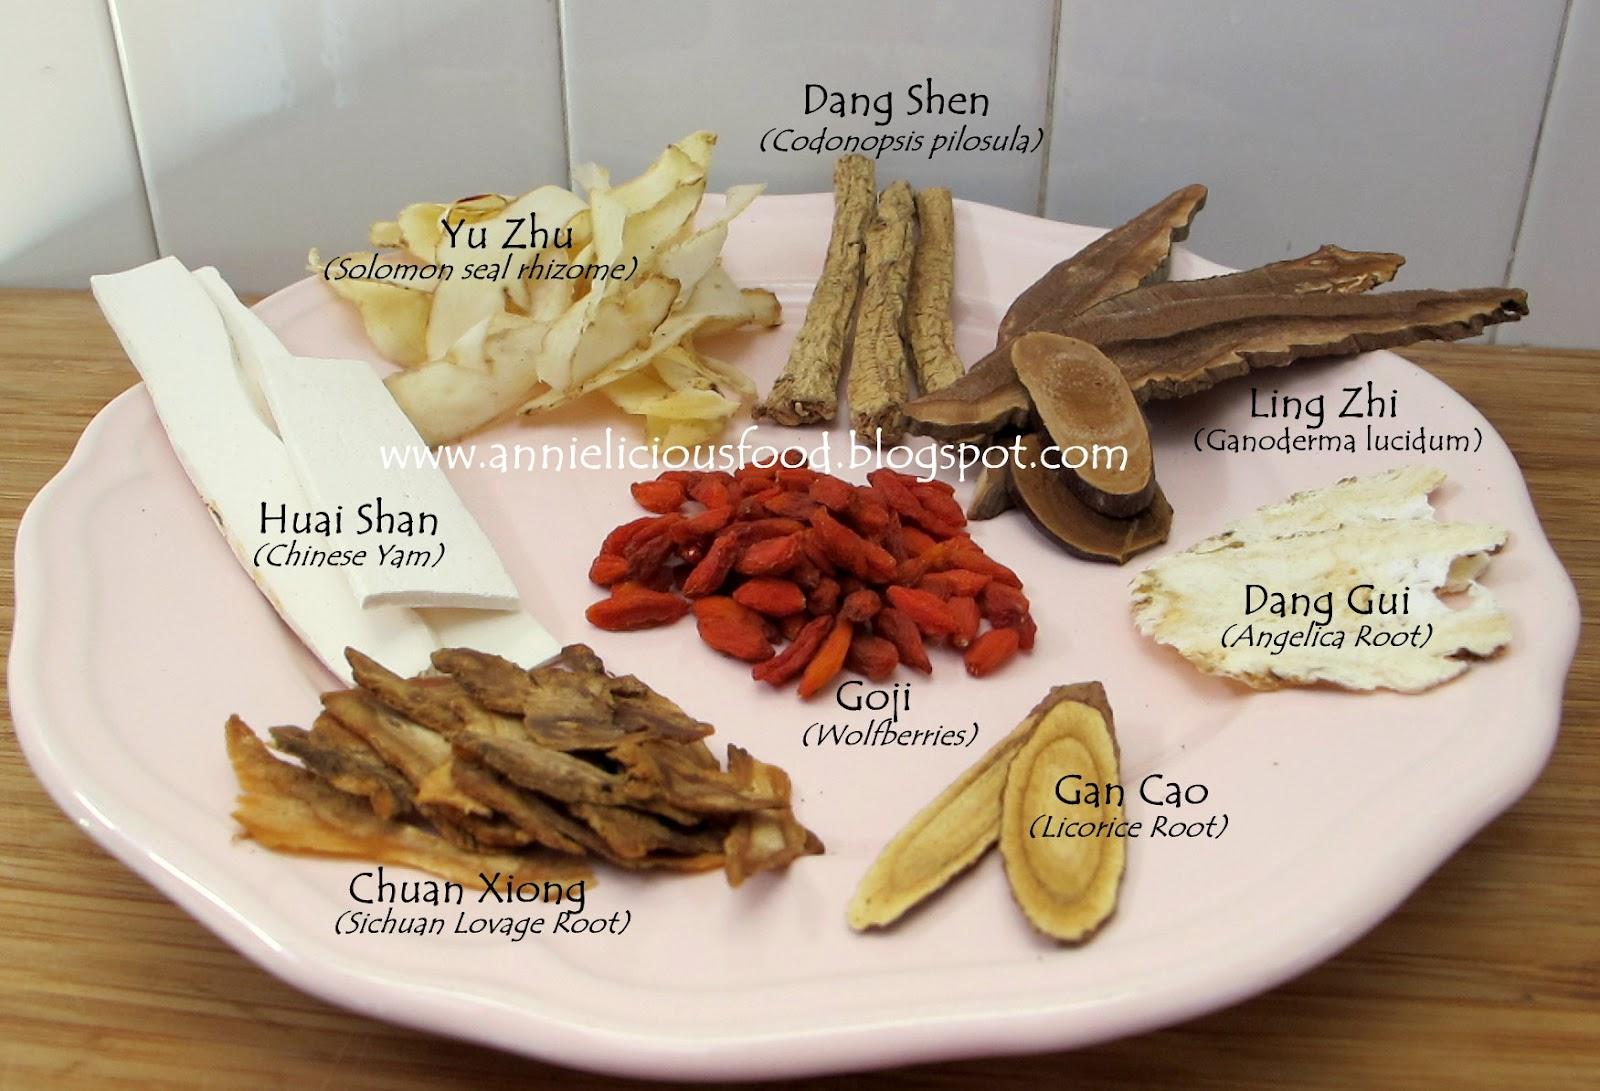 Chinese herbal treatment - Friday July 6 2012